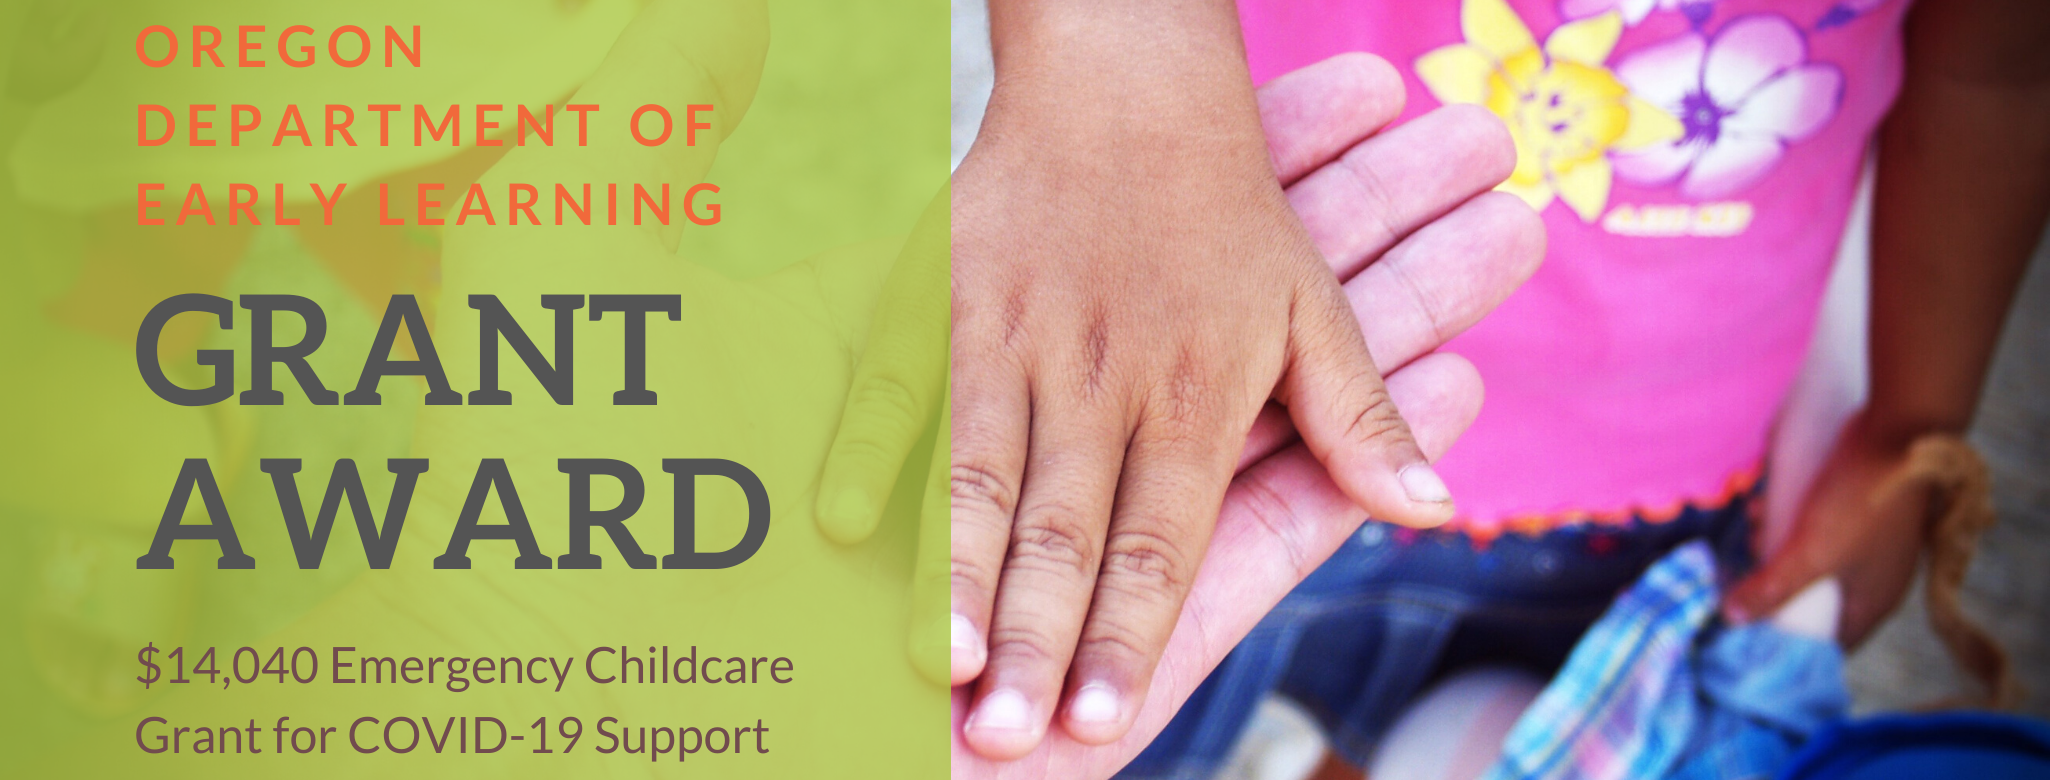 FOR IMMEDIATE RELEASE For more information, contact: Jessica Gaul Executive Director 541-957-1008 Jessicag@cobbschool.org COBB CHILDREN'S LEARNING CENTER RECEIVES $14,040 EMERGENCY CHILDCARE GRANT FOR COVID-19 SUPPORT Roseburg, Oregon (07.20.20) — Cobb Children's Learning Center has received a $14.040.00 grant from the Oregon Department of Early Learning  to support its operations at Cobb Childcare and Preschool while […]